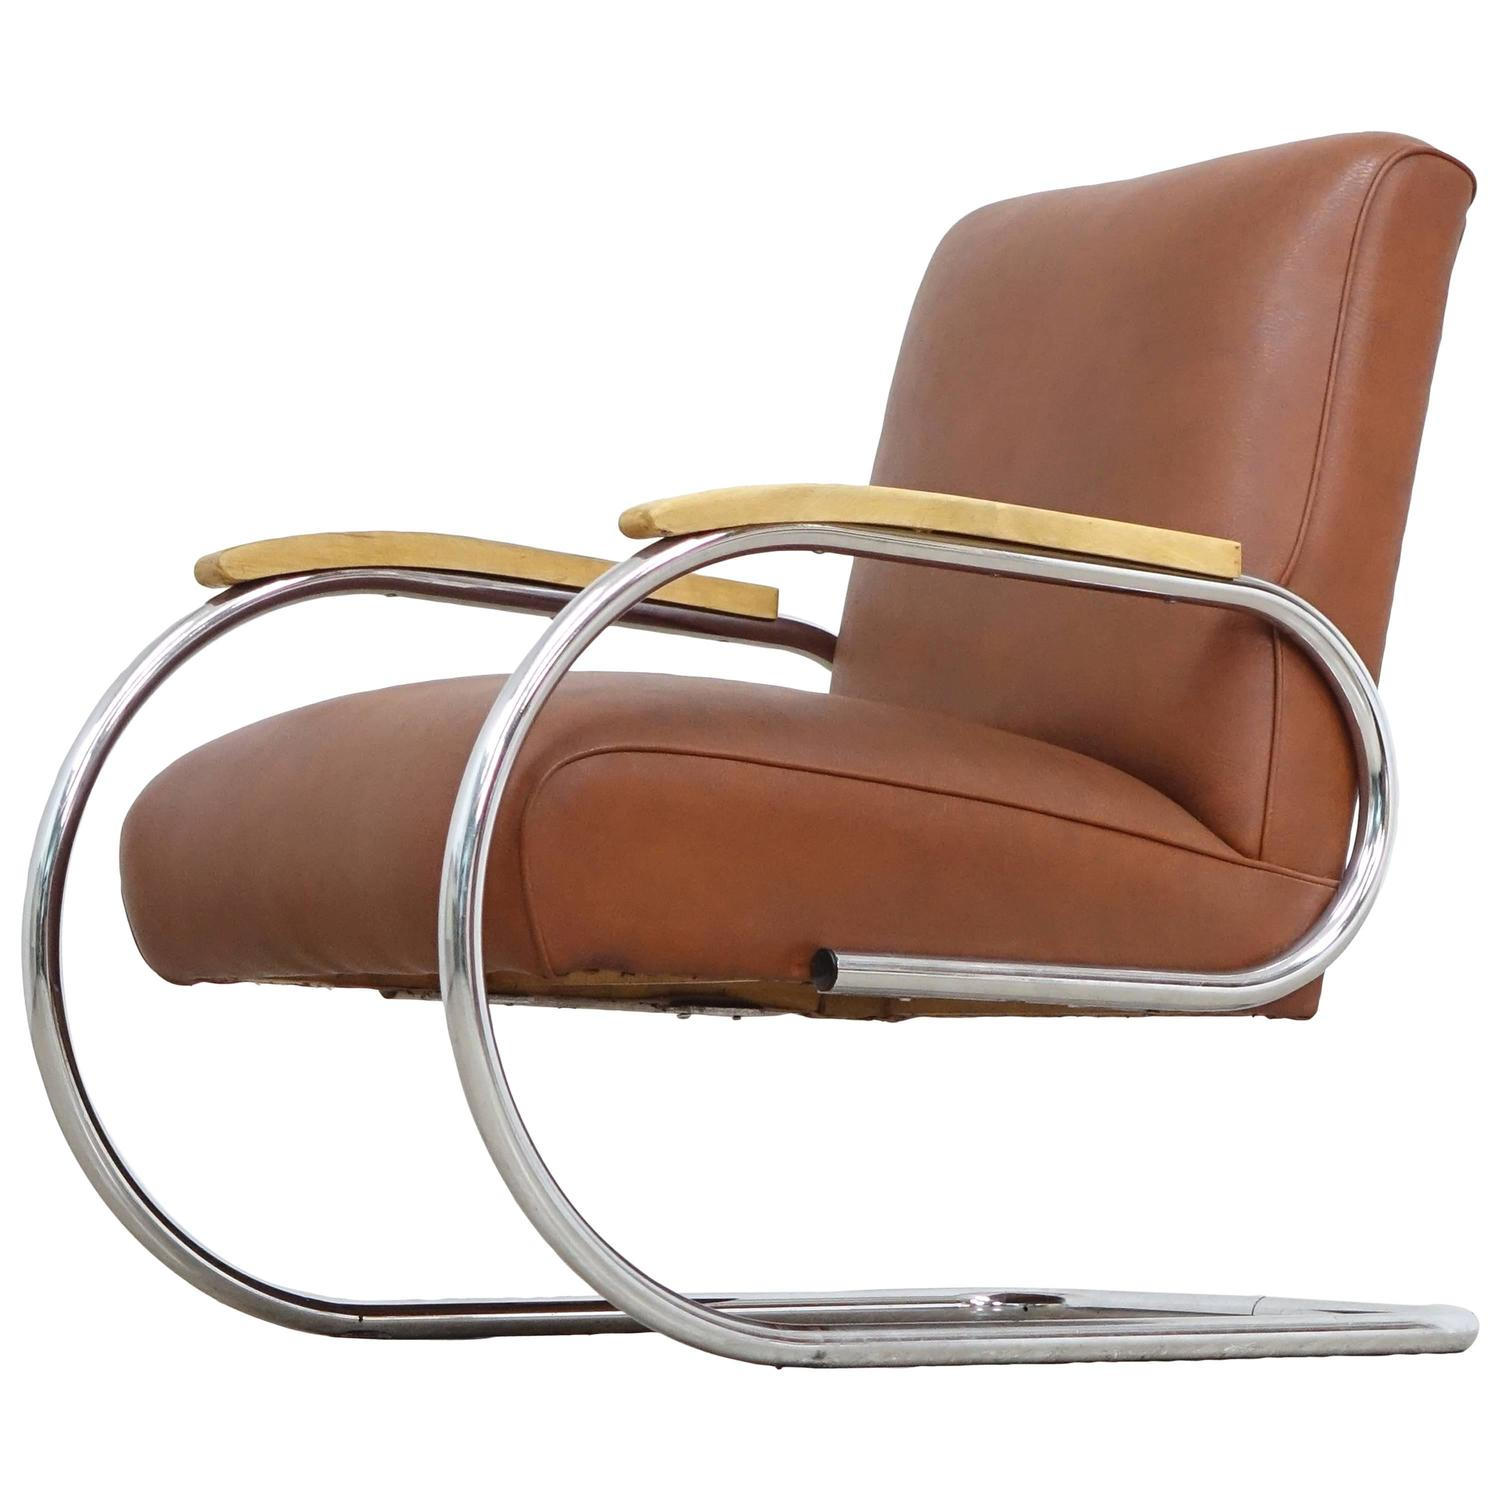 Tubax Easy Chair Bauhaus 1920 Steel Tube Lounge Chair Breuer Art